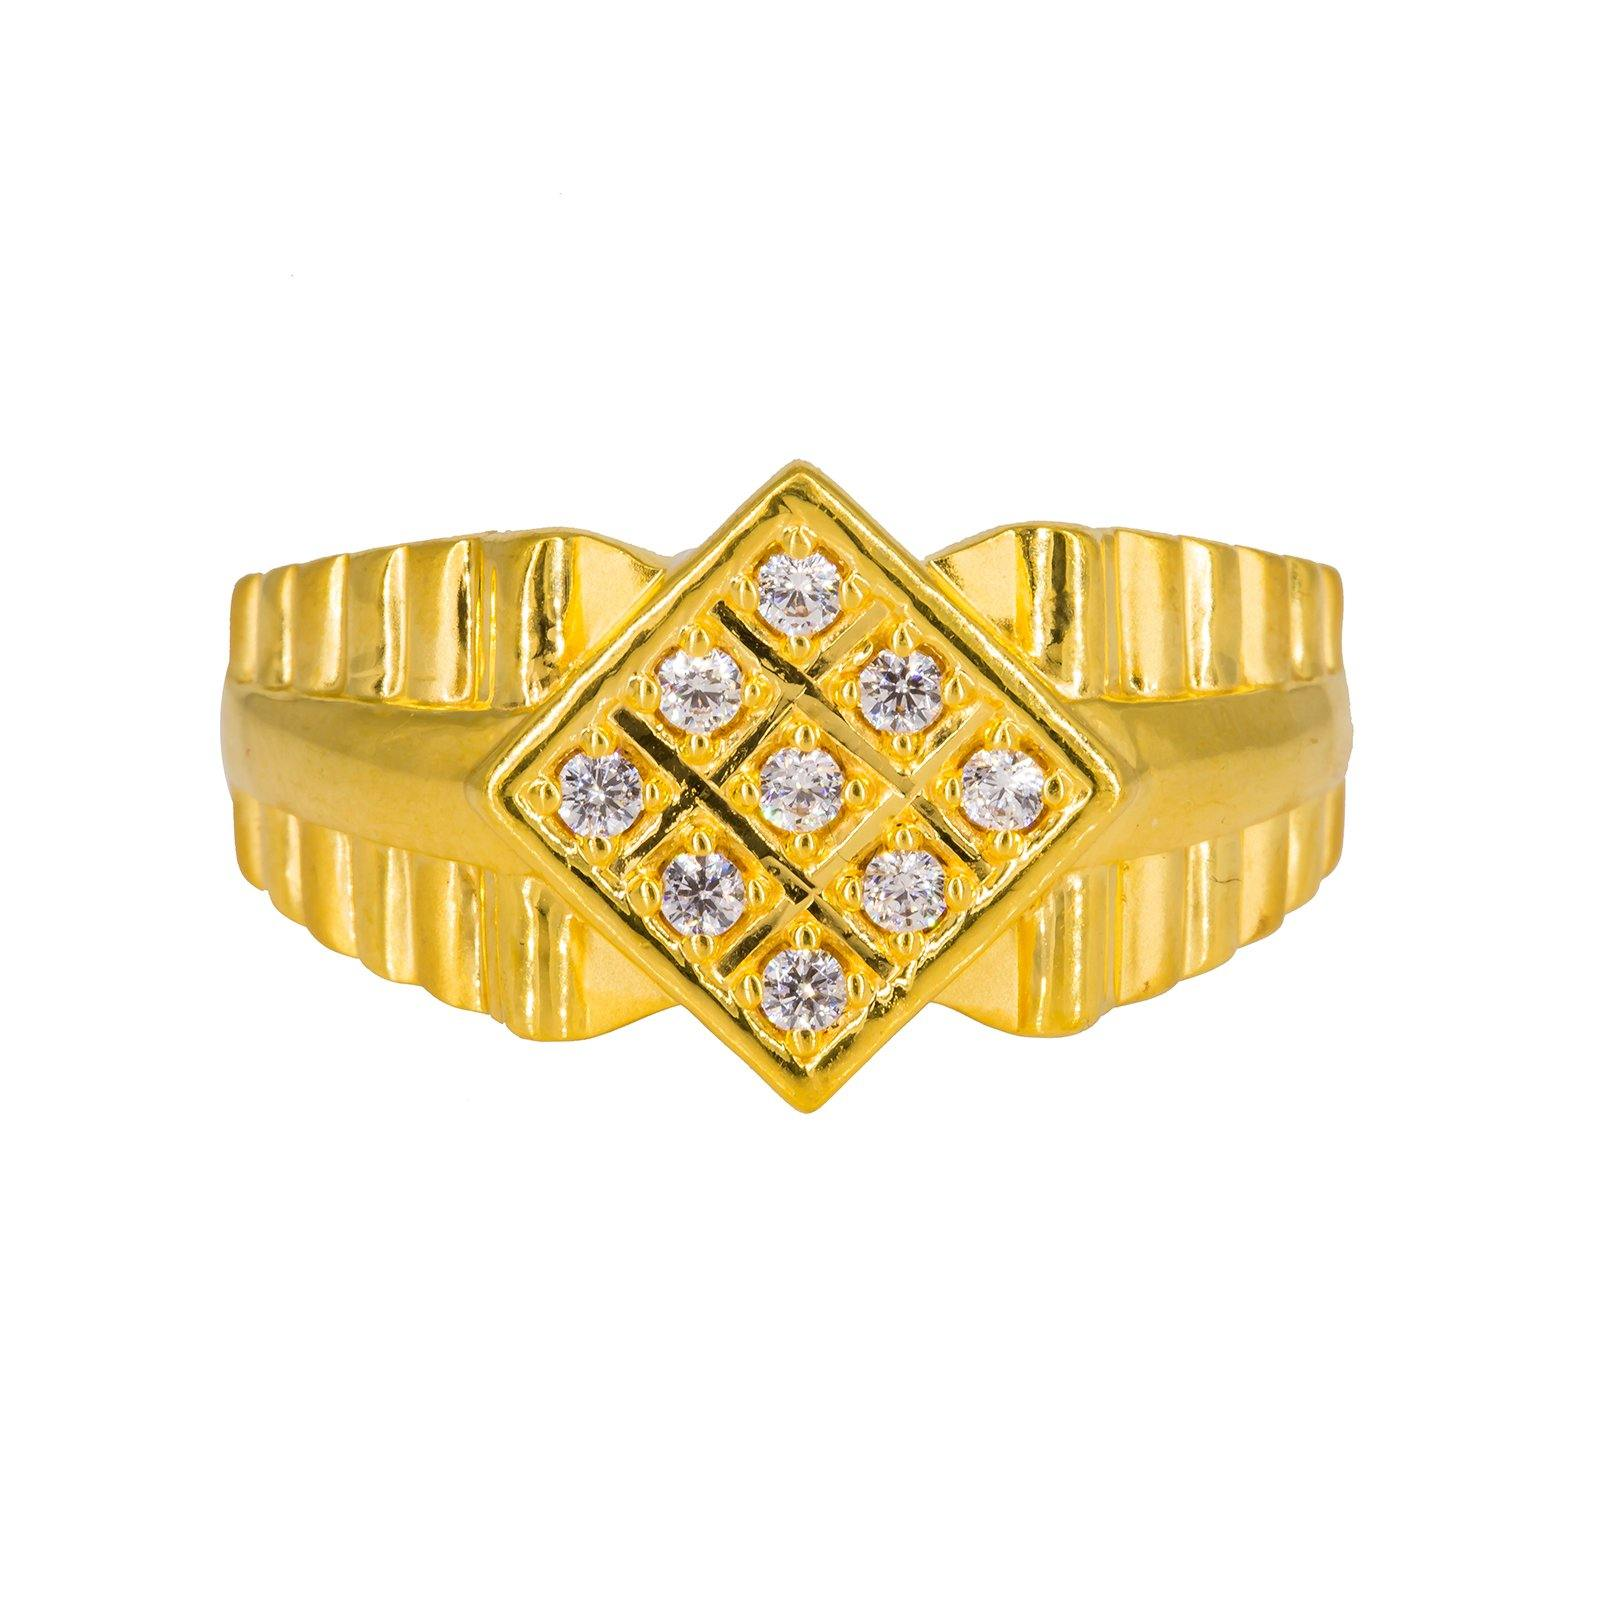 22K Yellow Gold Men's Ring W/ CZ Gems & Belted Ribbed Shank